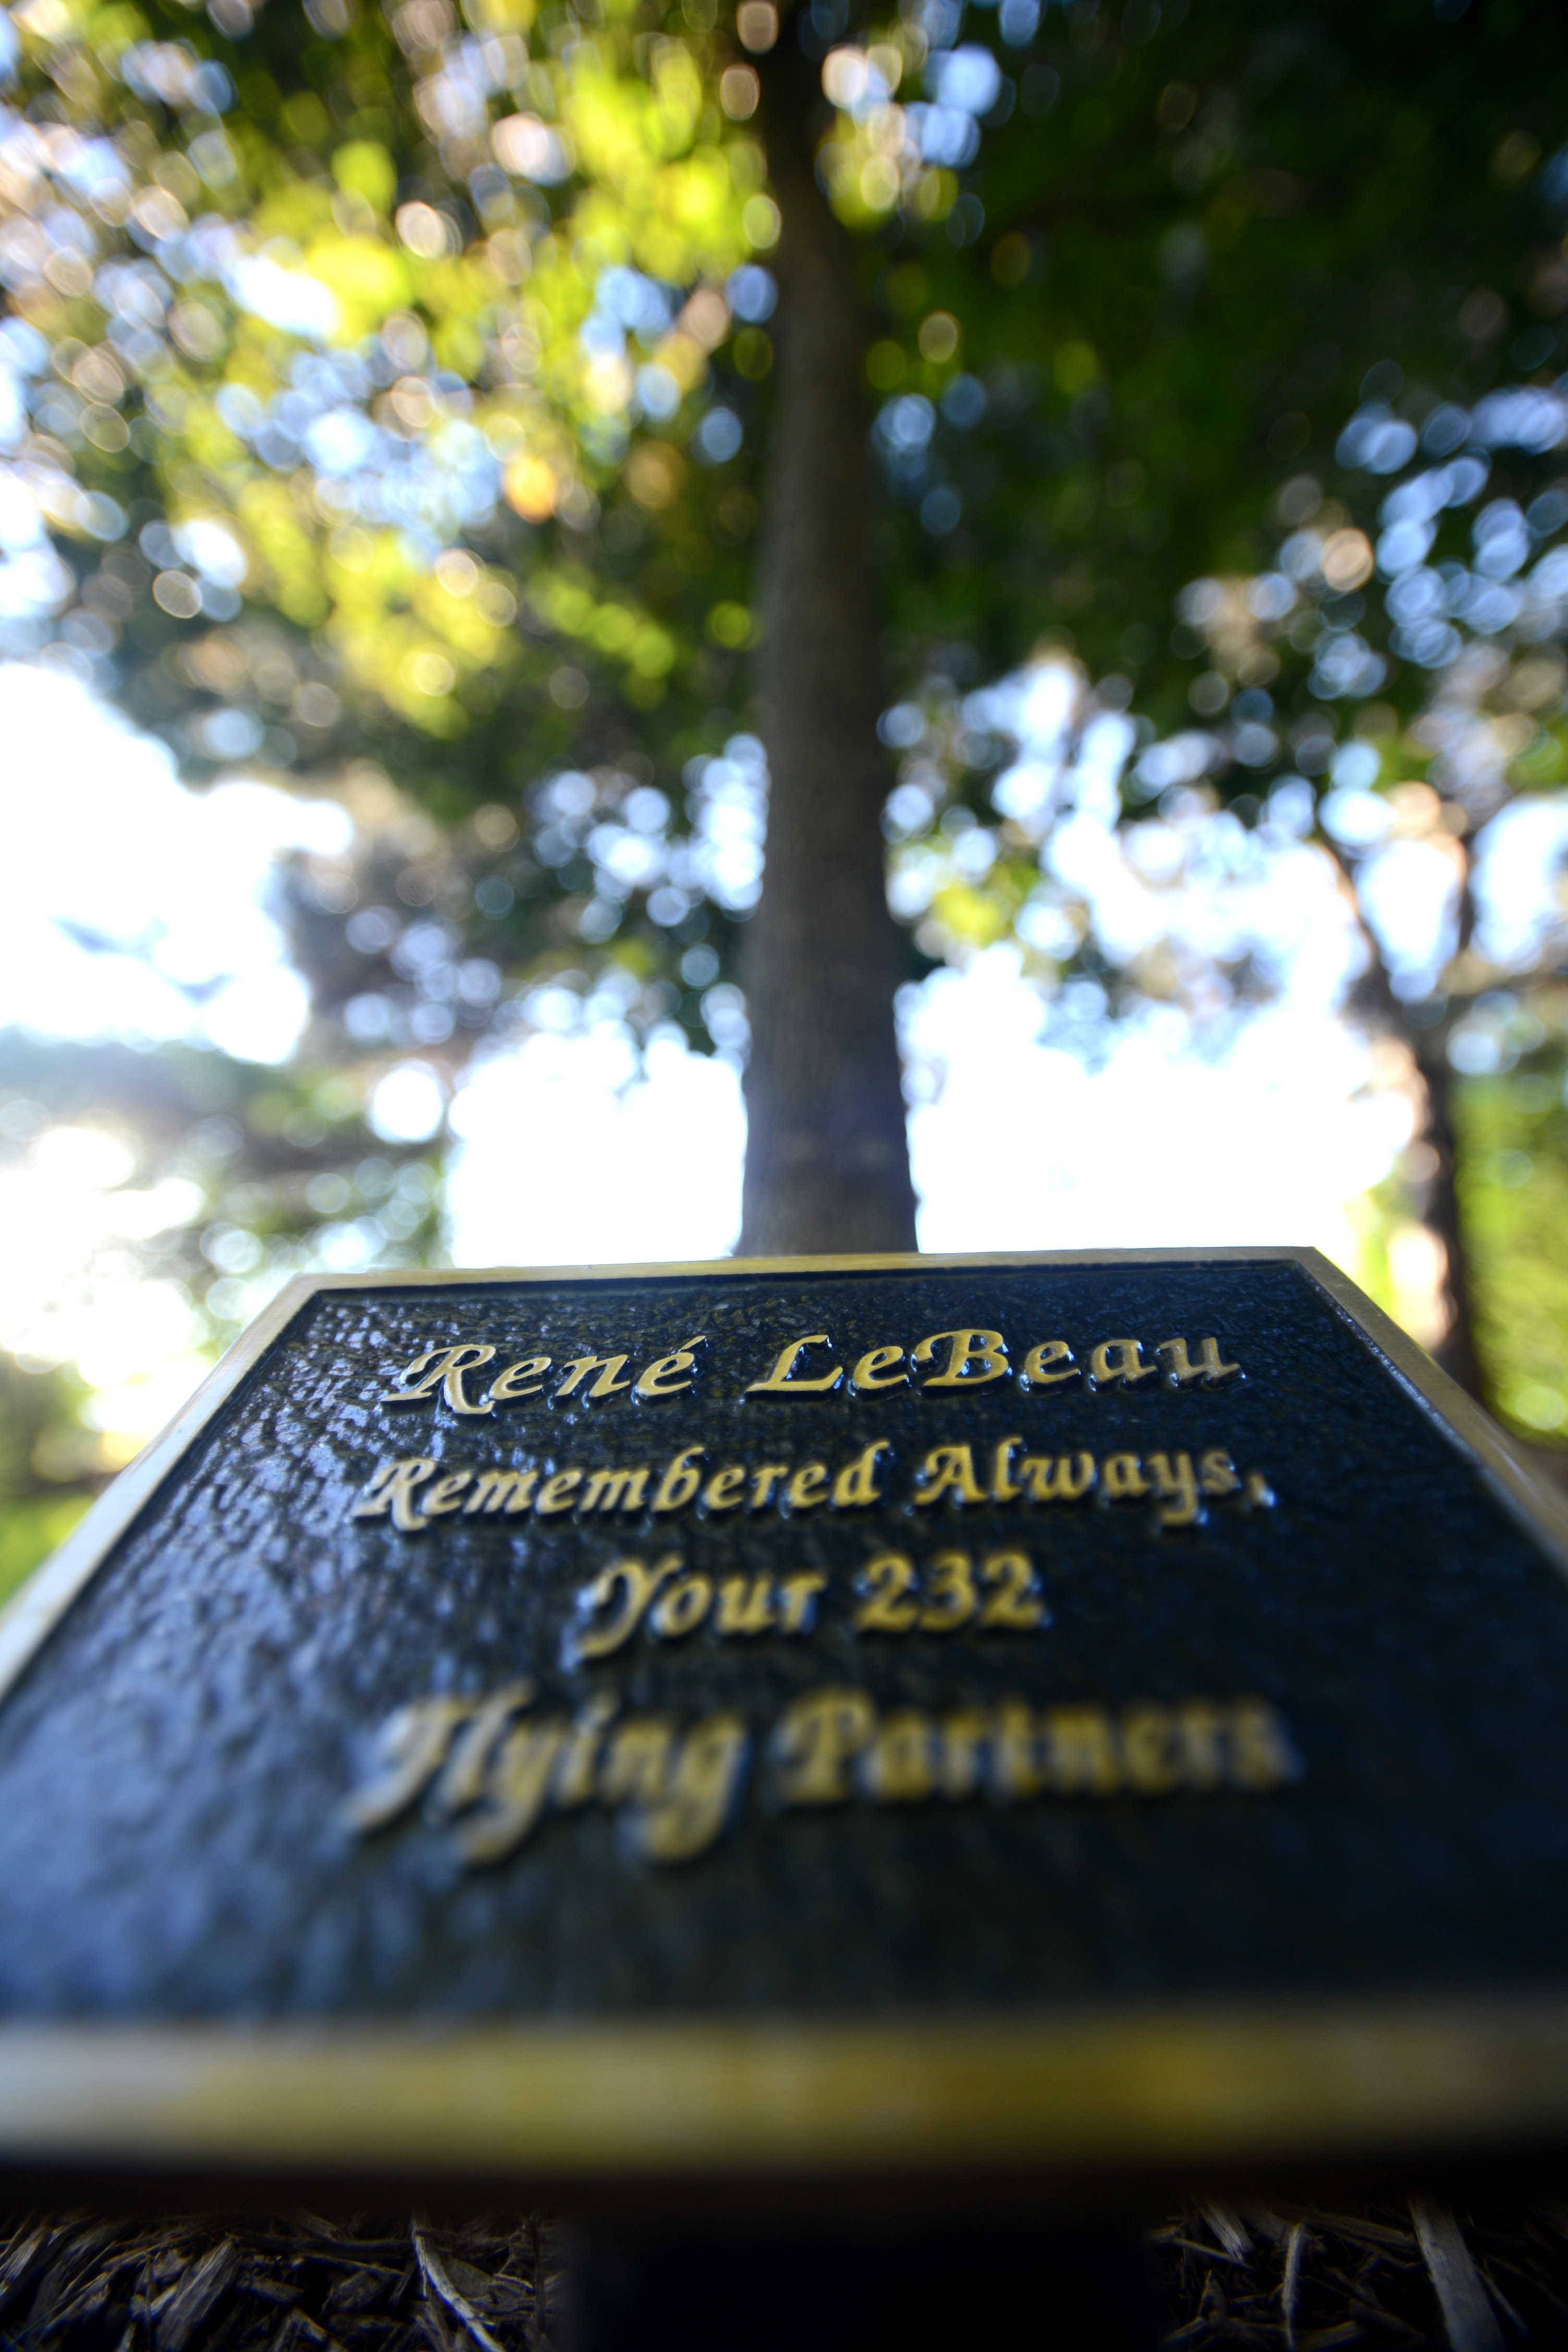 Two plaques and a bench mark a memorial to Flight 232 flight attendant Rene LeBeau near the Robert O. Atcher Municipal Center in Schaumburg. LeBeau, a Schaumburg resident, consoled a frightened young passenger before the plane crashed on July 19, 1989.